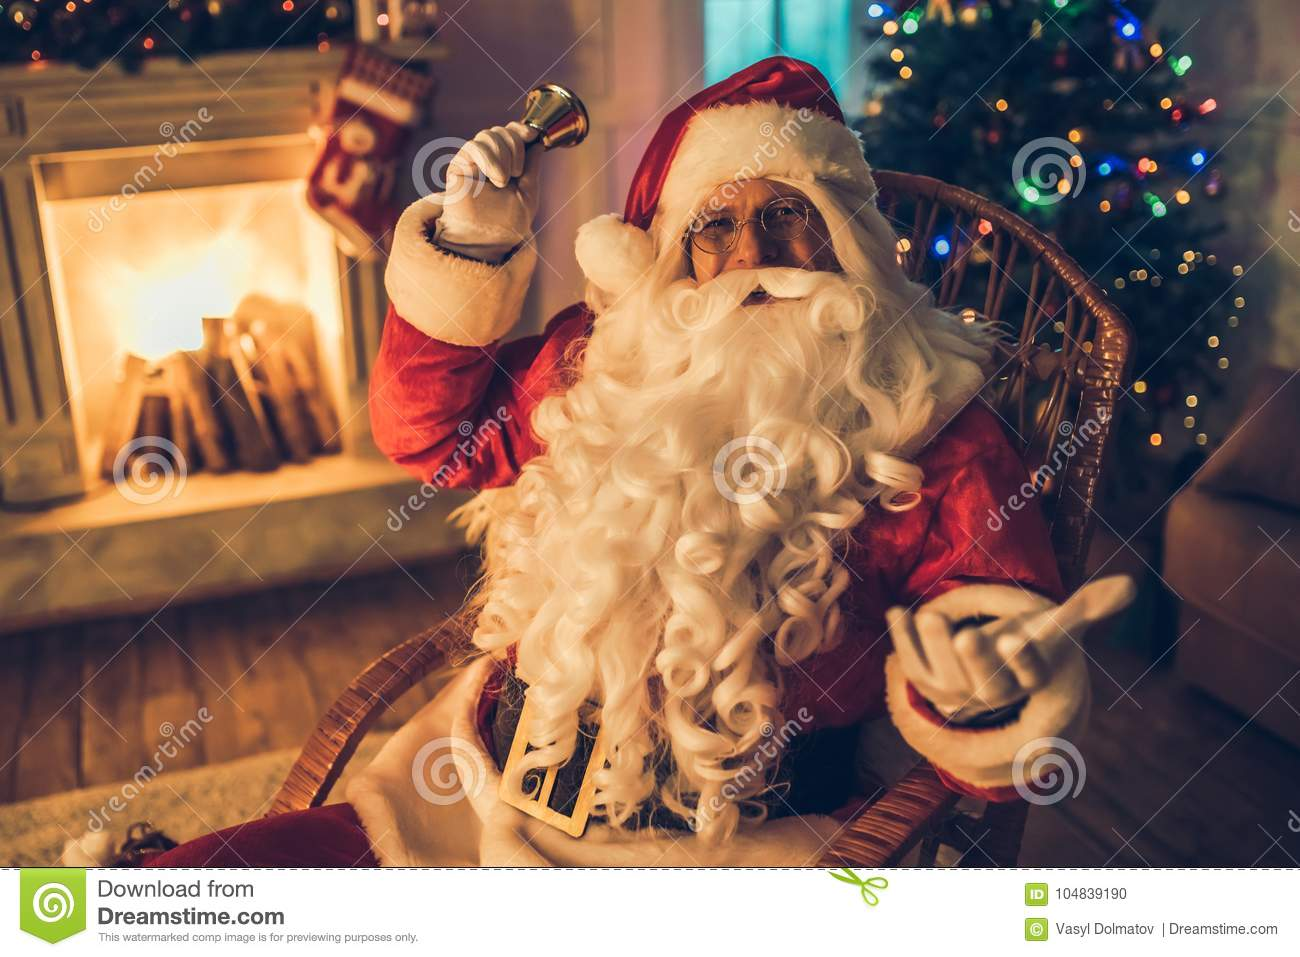 Santa Claus in his residence